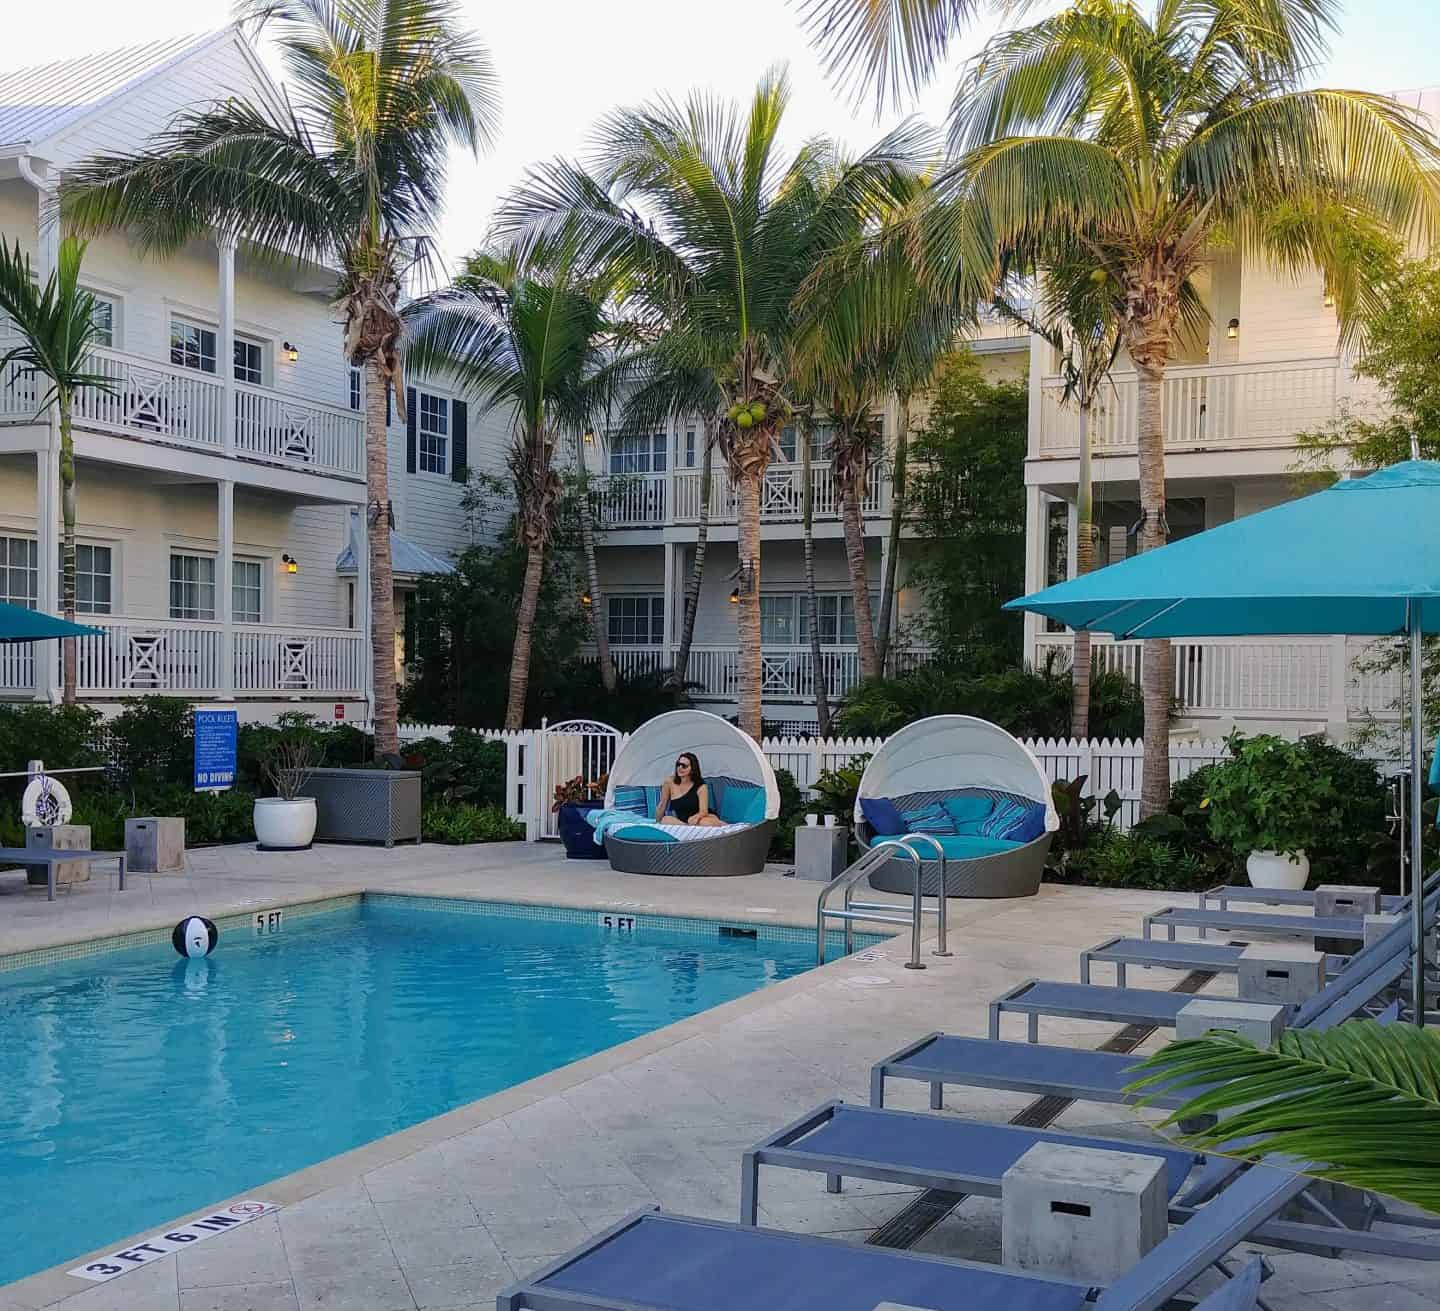 keywest fl where to stay